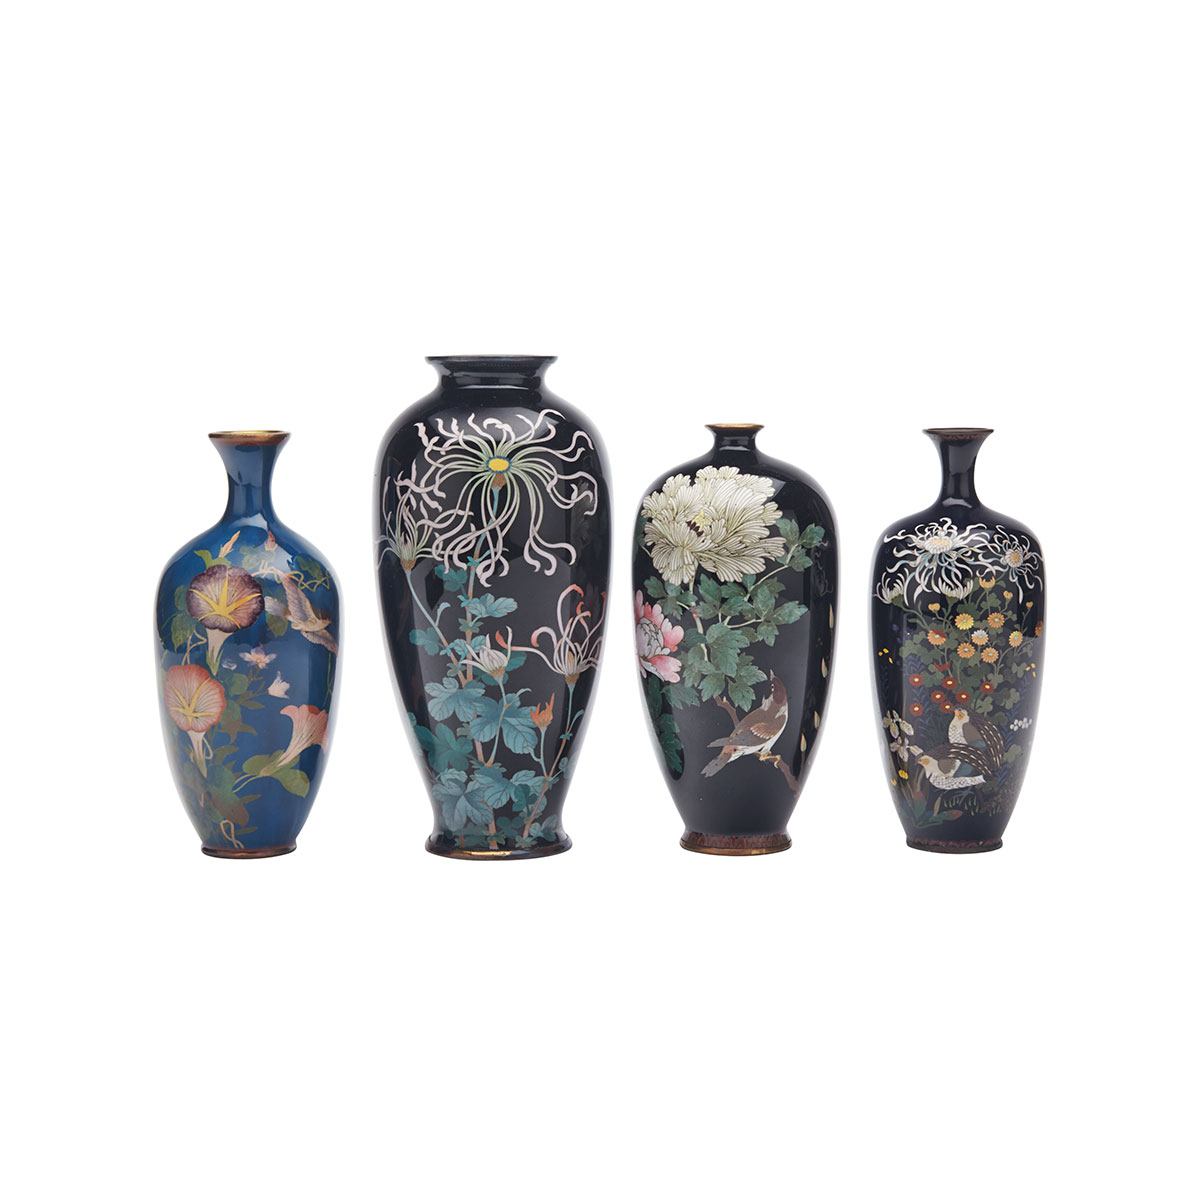 Group of Four Cloisonné Enamel Floral Vases, Early 20th Century